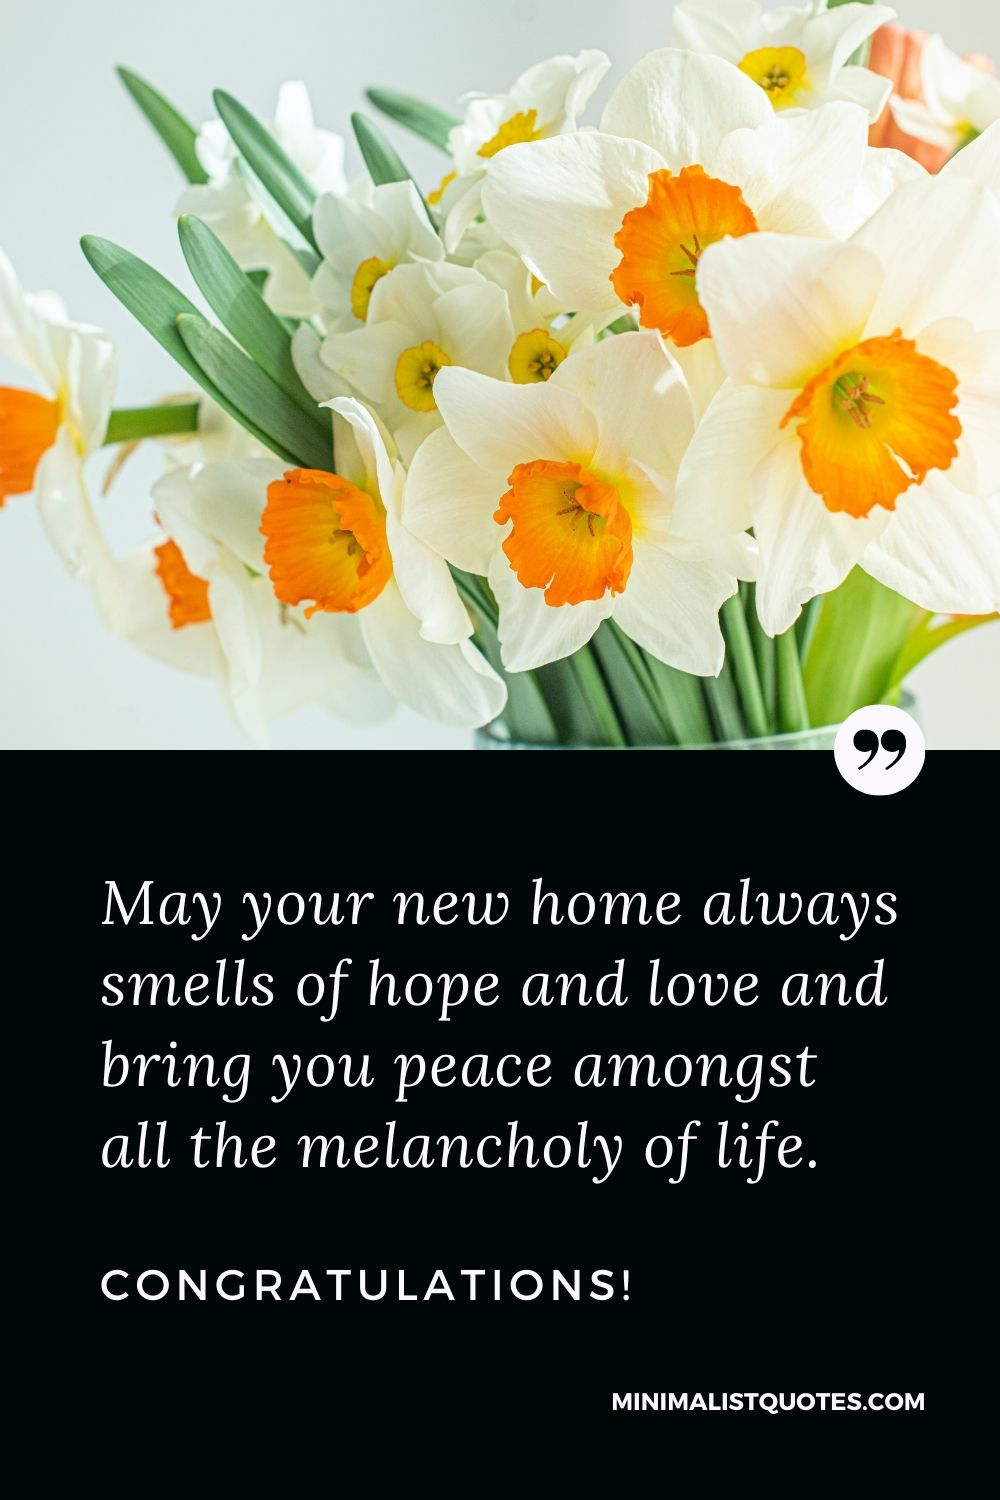 New Home Wish, Quote & Message With Image: May your new home always smells of hope and love and bring you peace amongst all the melancholy of life. Congratulations!